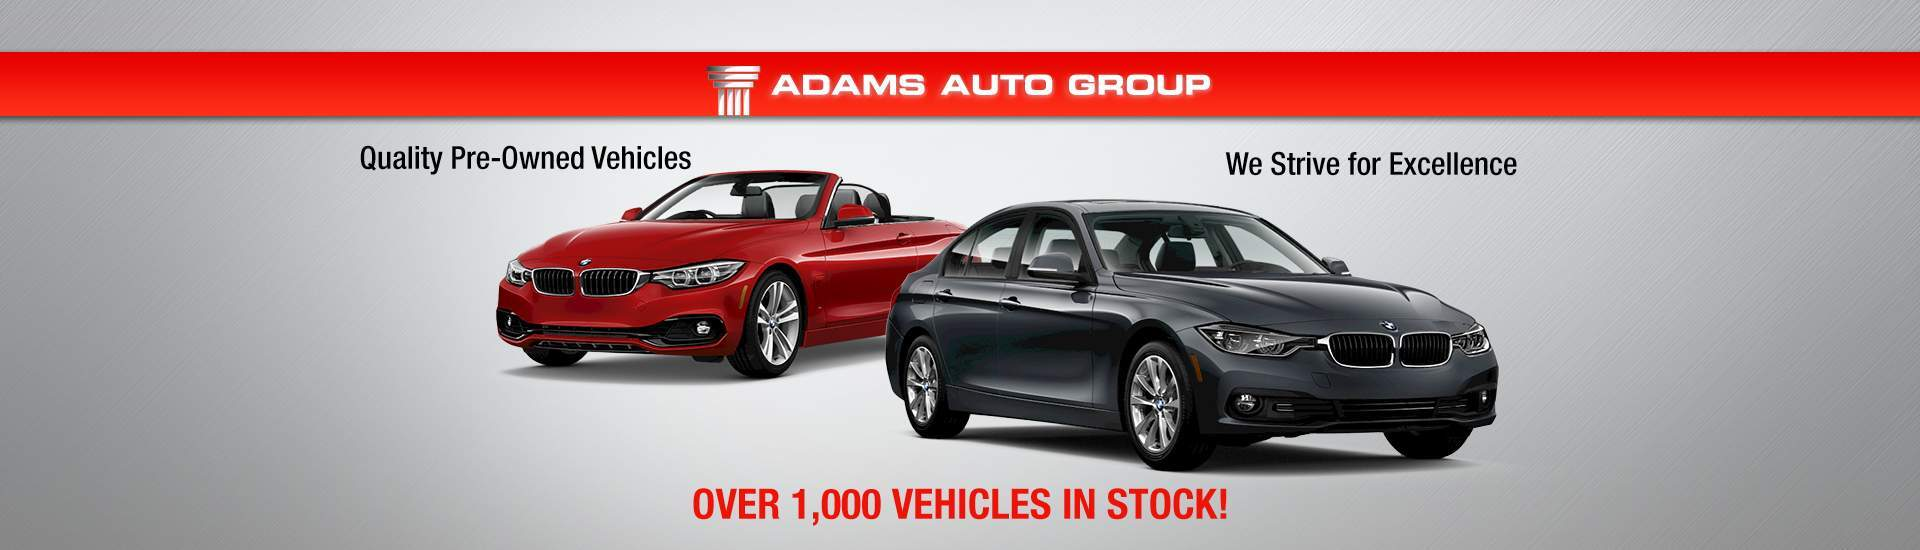 Adams Auto Group >> Used Car Dealership Charlotte Nc Adams Auto Group